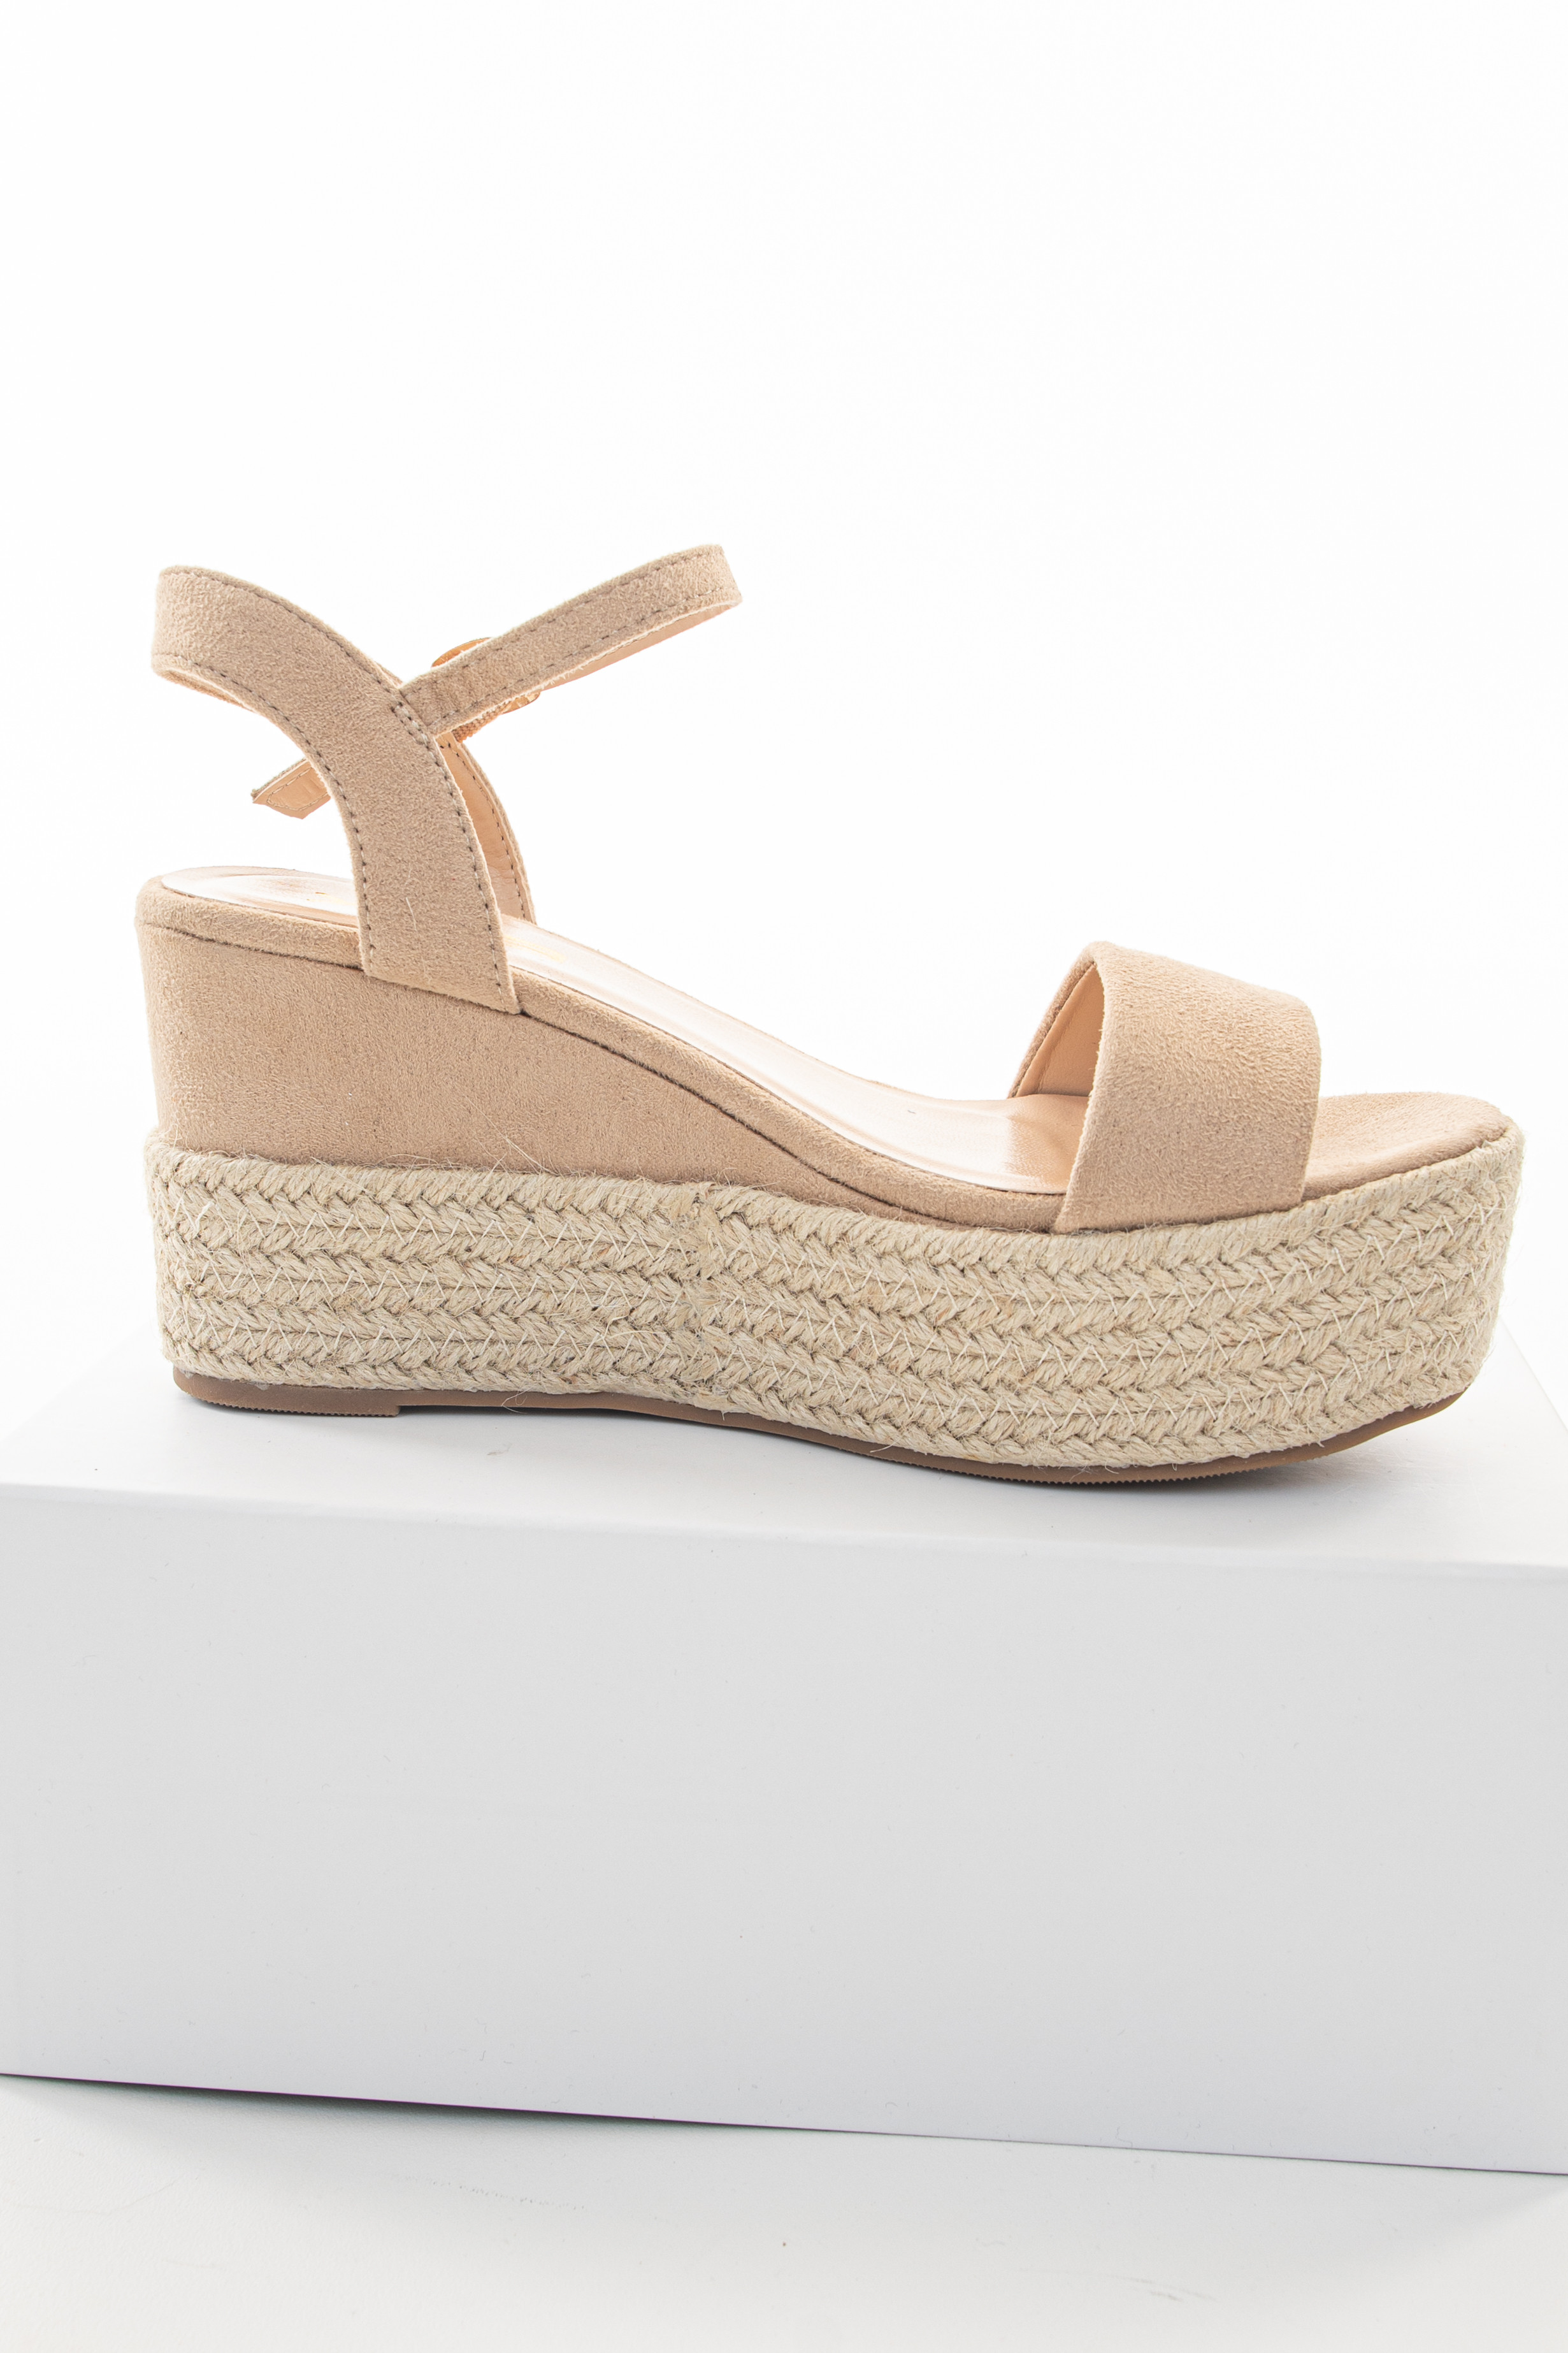 Beige Faux Suede Espadrille Sandals with Ankle Strap